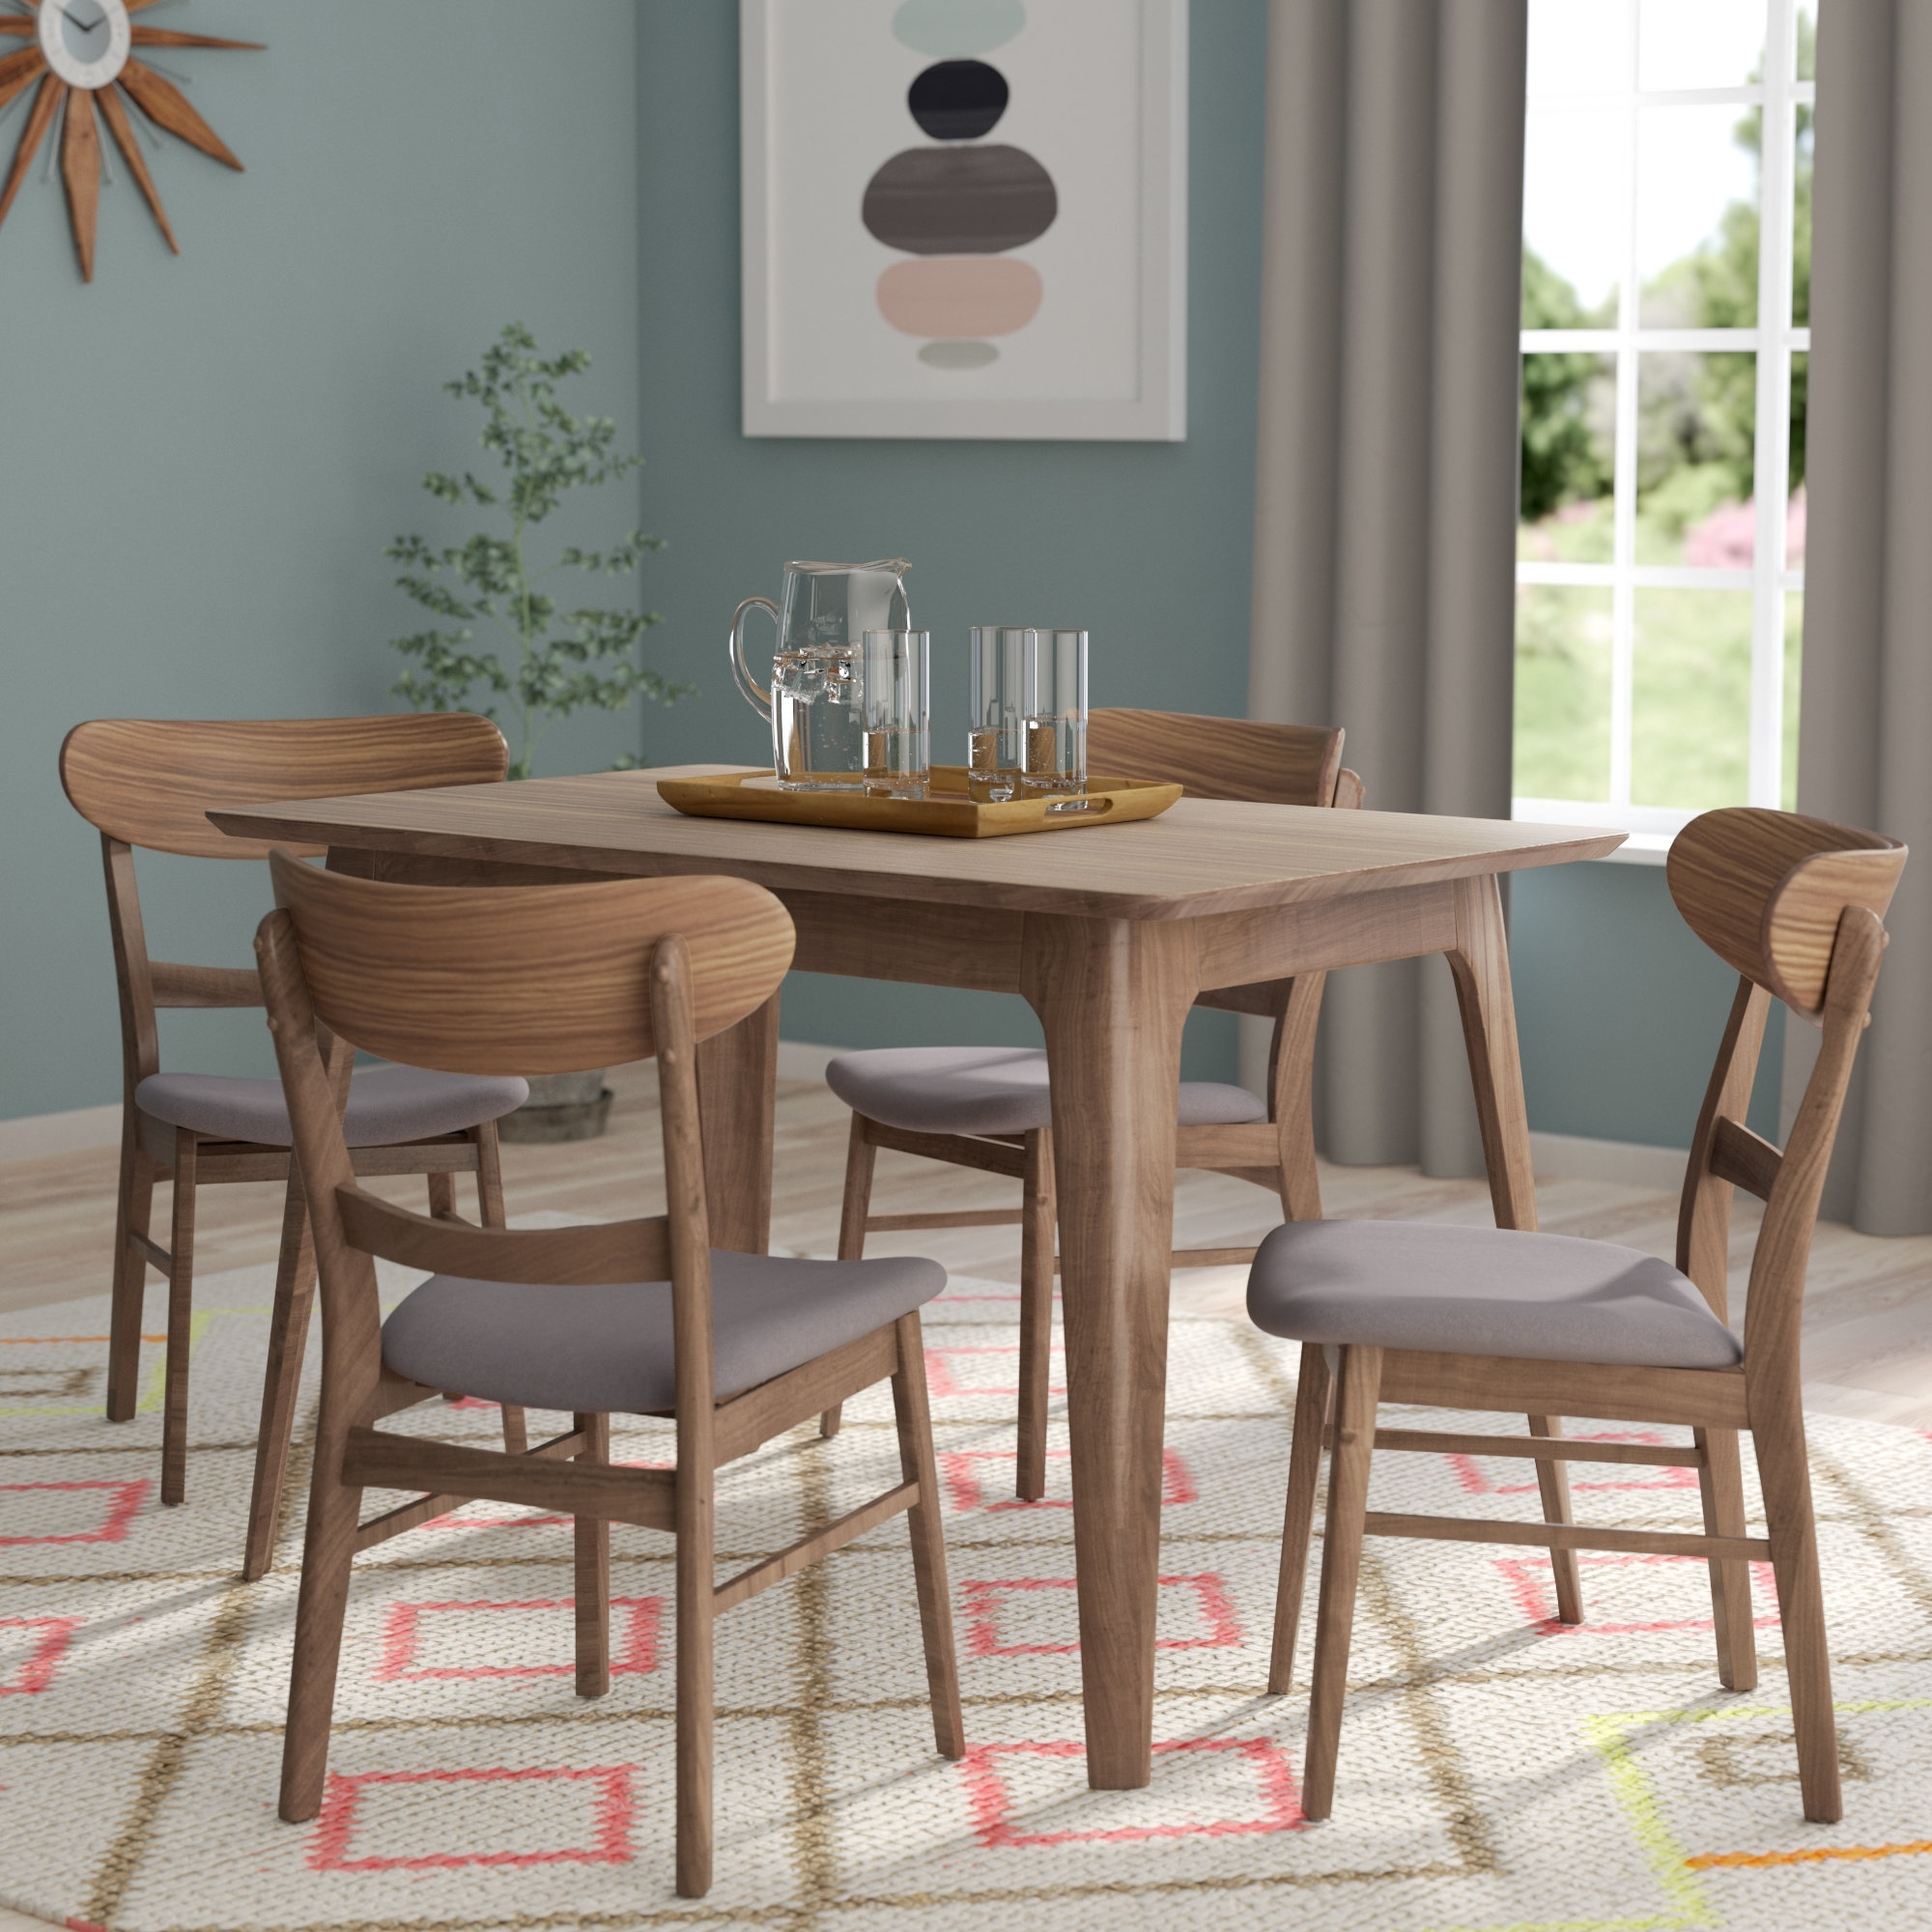 Craftsman 5 Piece Round Dining Sets With Uph Side Chairs With Regard To Best And Newest Langley Street Yolanda 5 Piece Wood Dining Set & Reviews (Gallery 2 of 25)